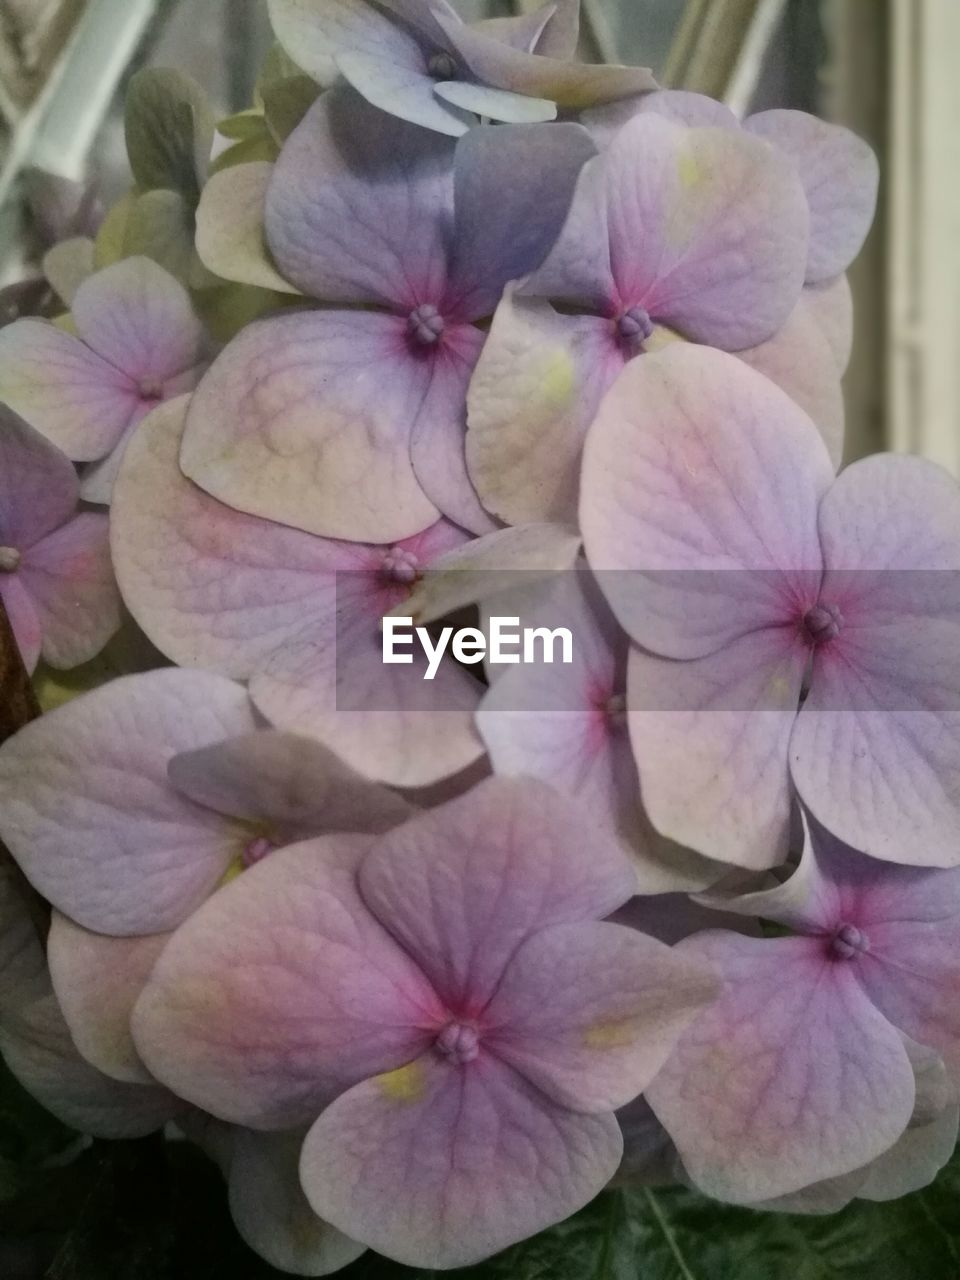 flower, petal, flower head, beauty in nature, plant, nature, growth, close-up, fragility, no people, pink color, outdoors, blooming, freshness, day, periwinkle